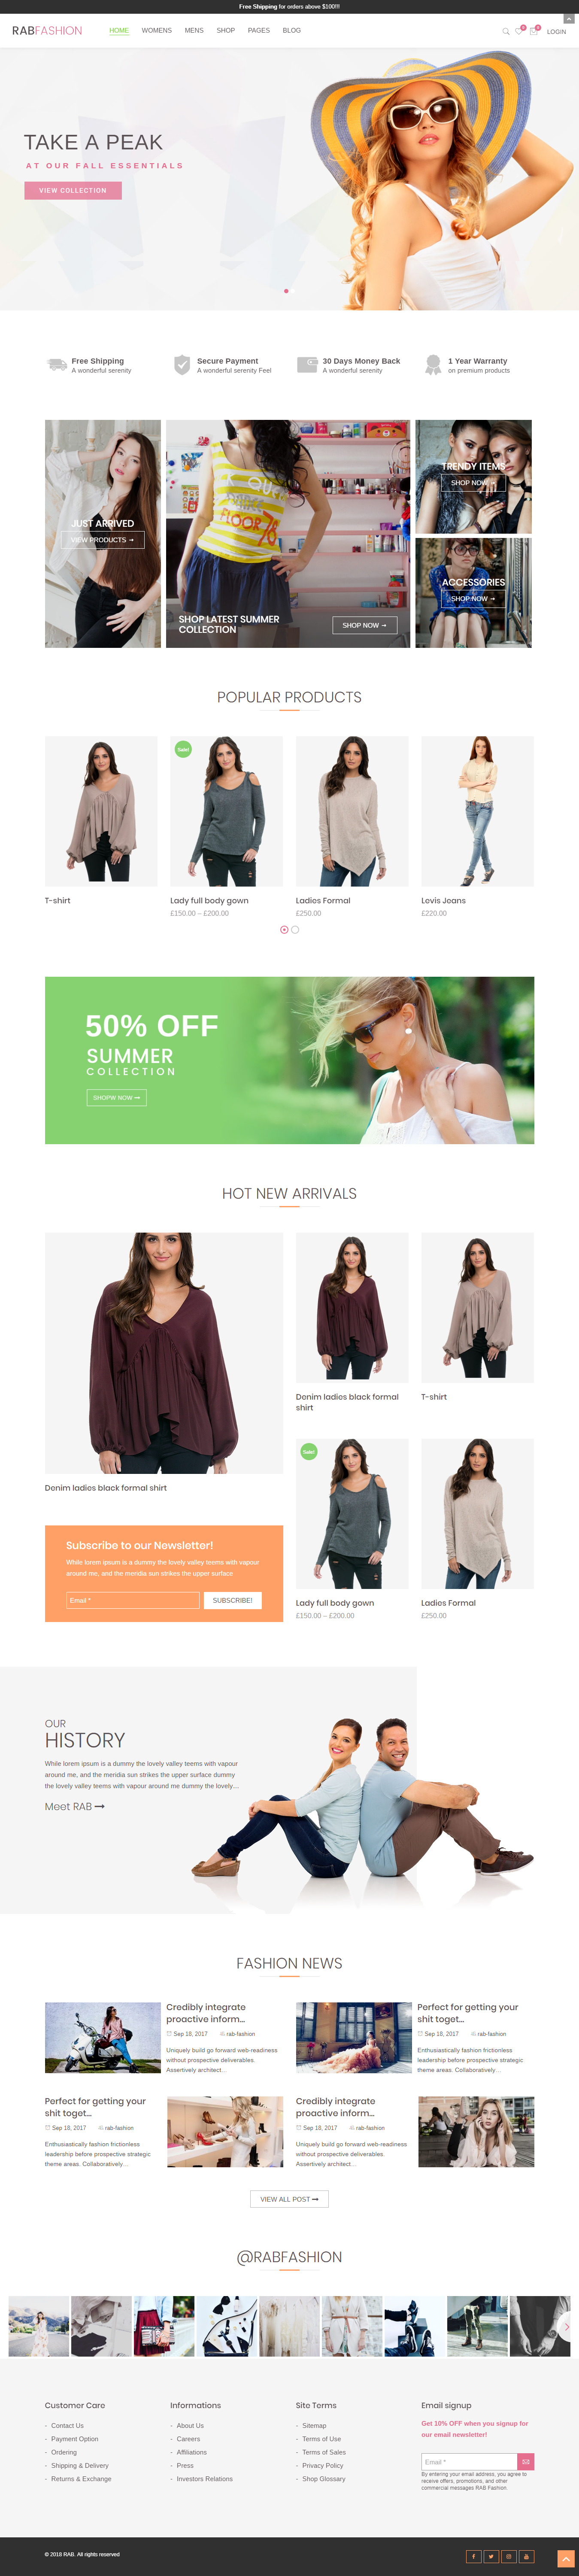 RAB - Best Premium Fashion WordPress Themes